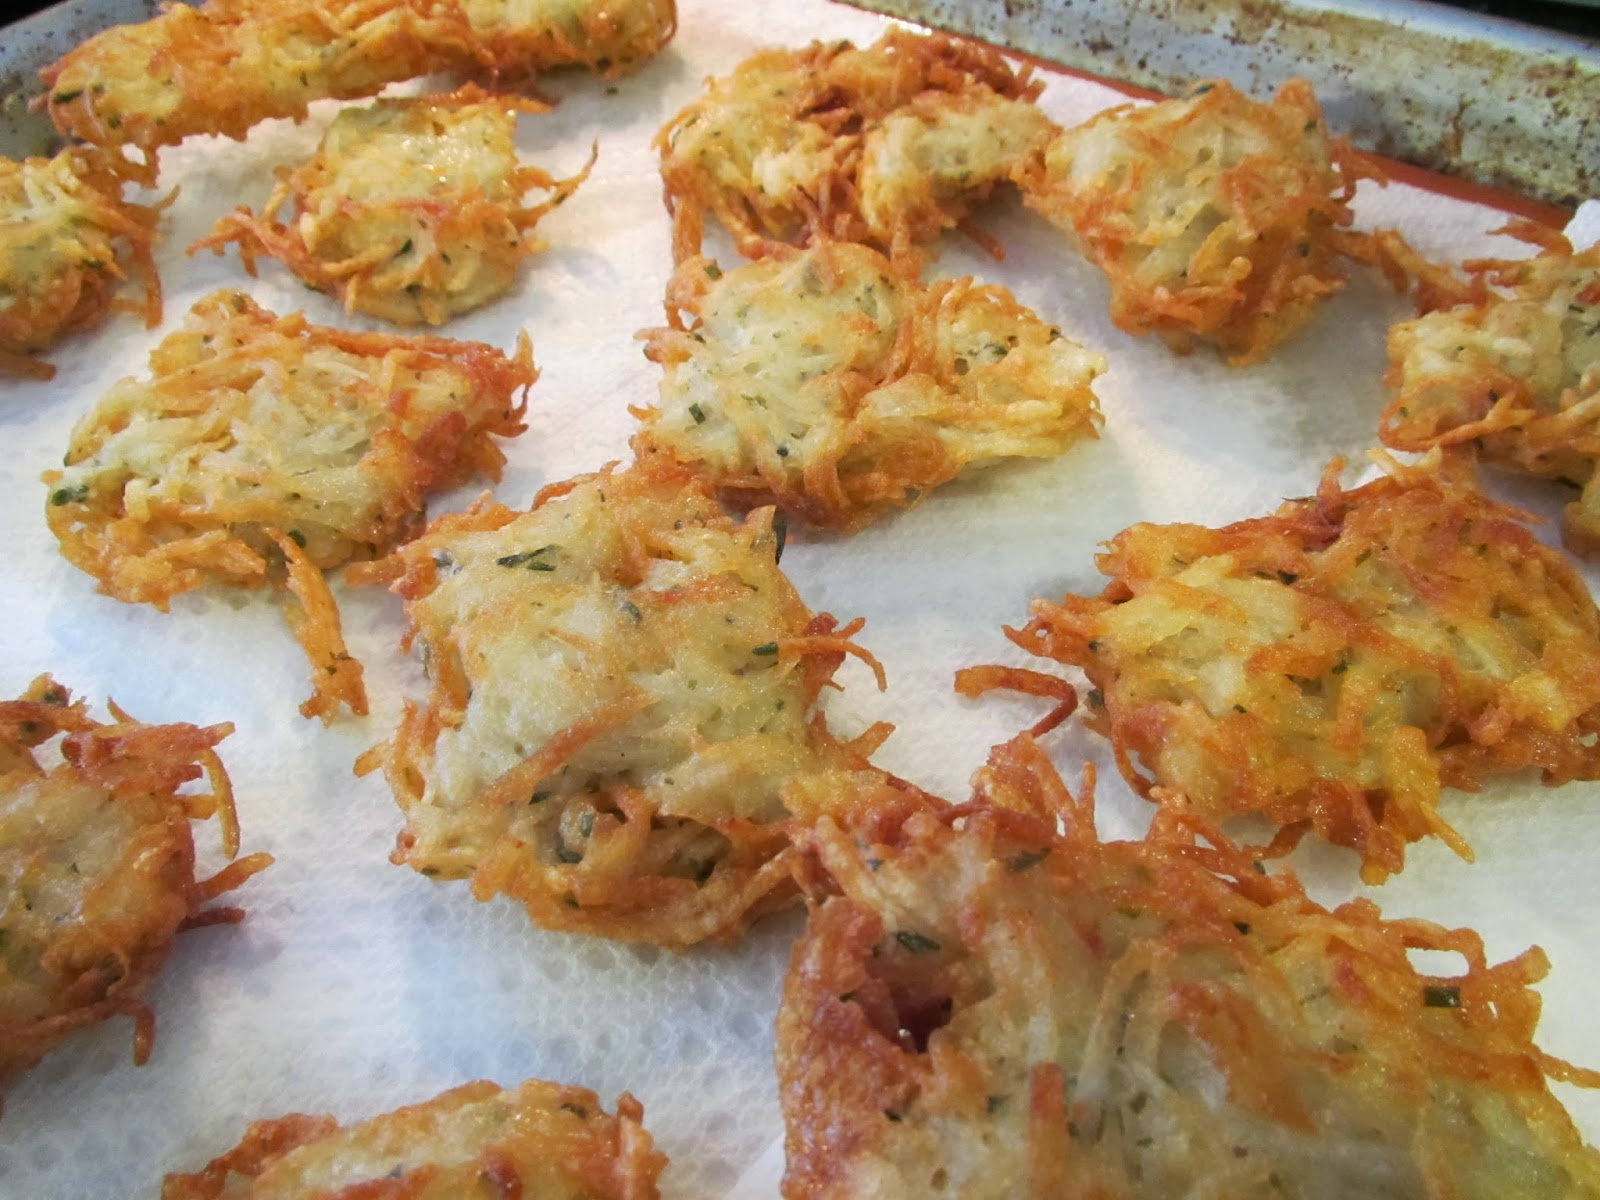 ... latkes (really I'm re-filling since the first tray of latkes seems to